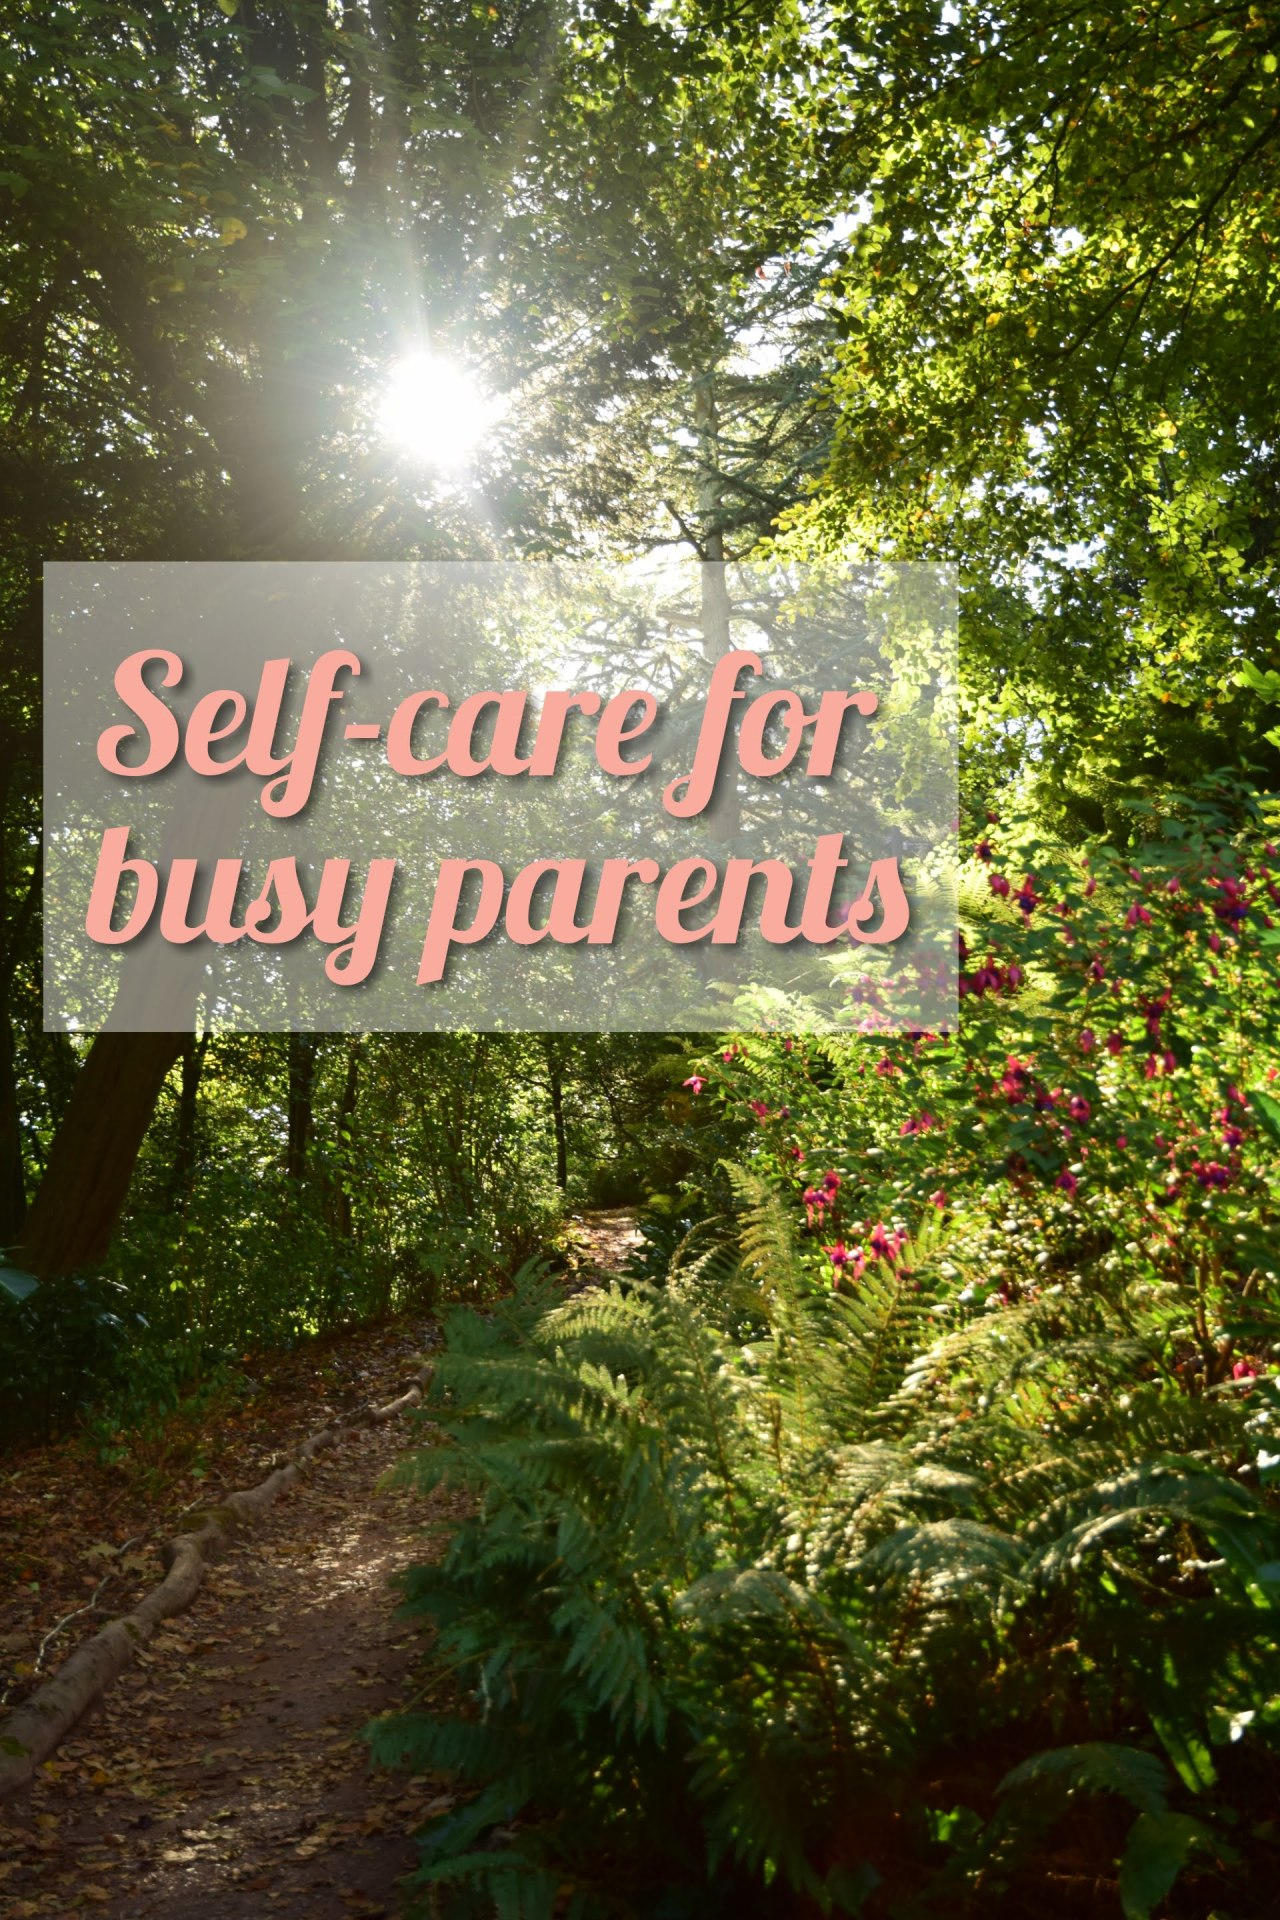 Self-care tips for busy parents